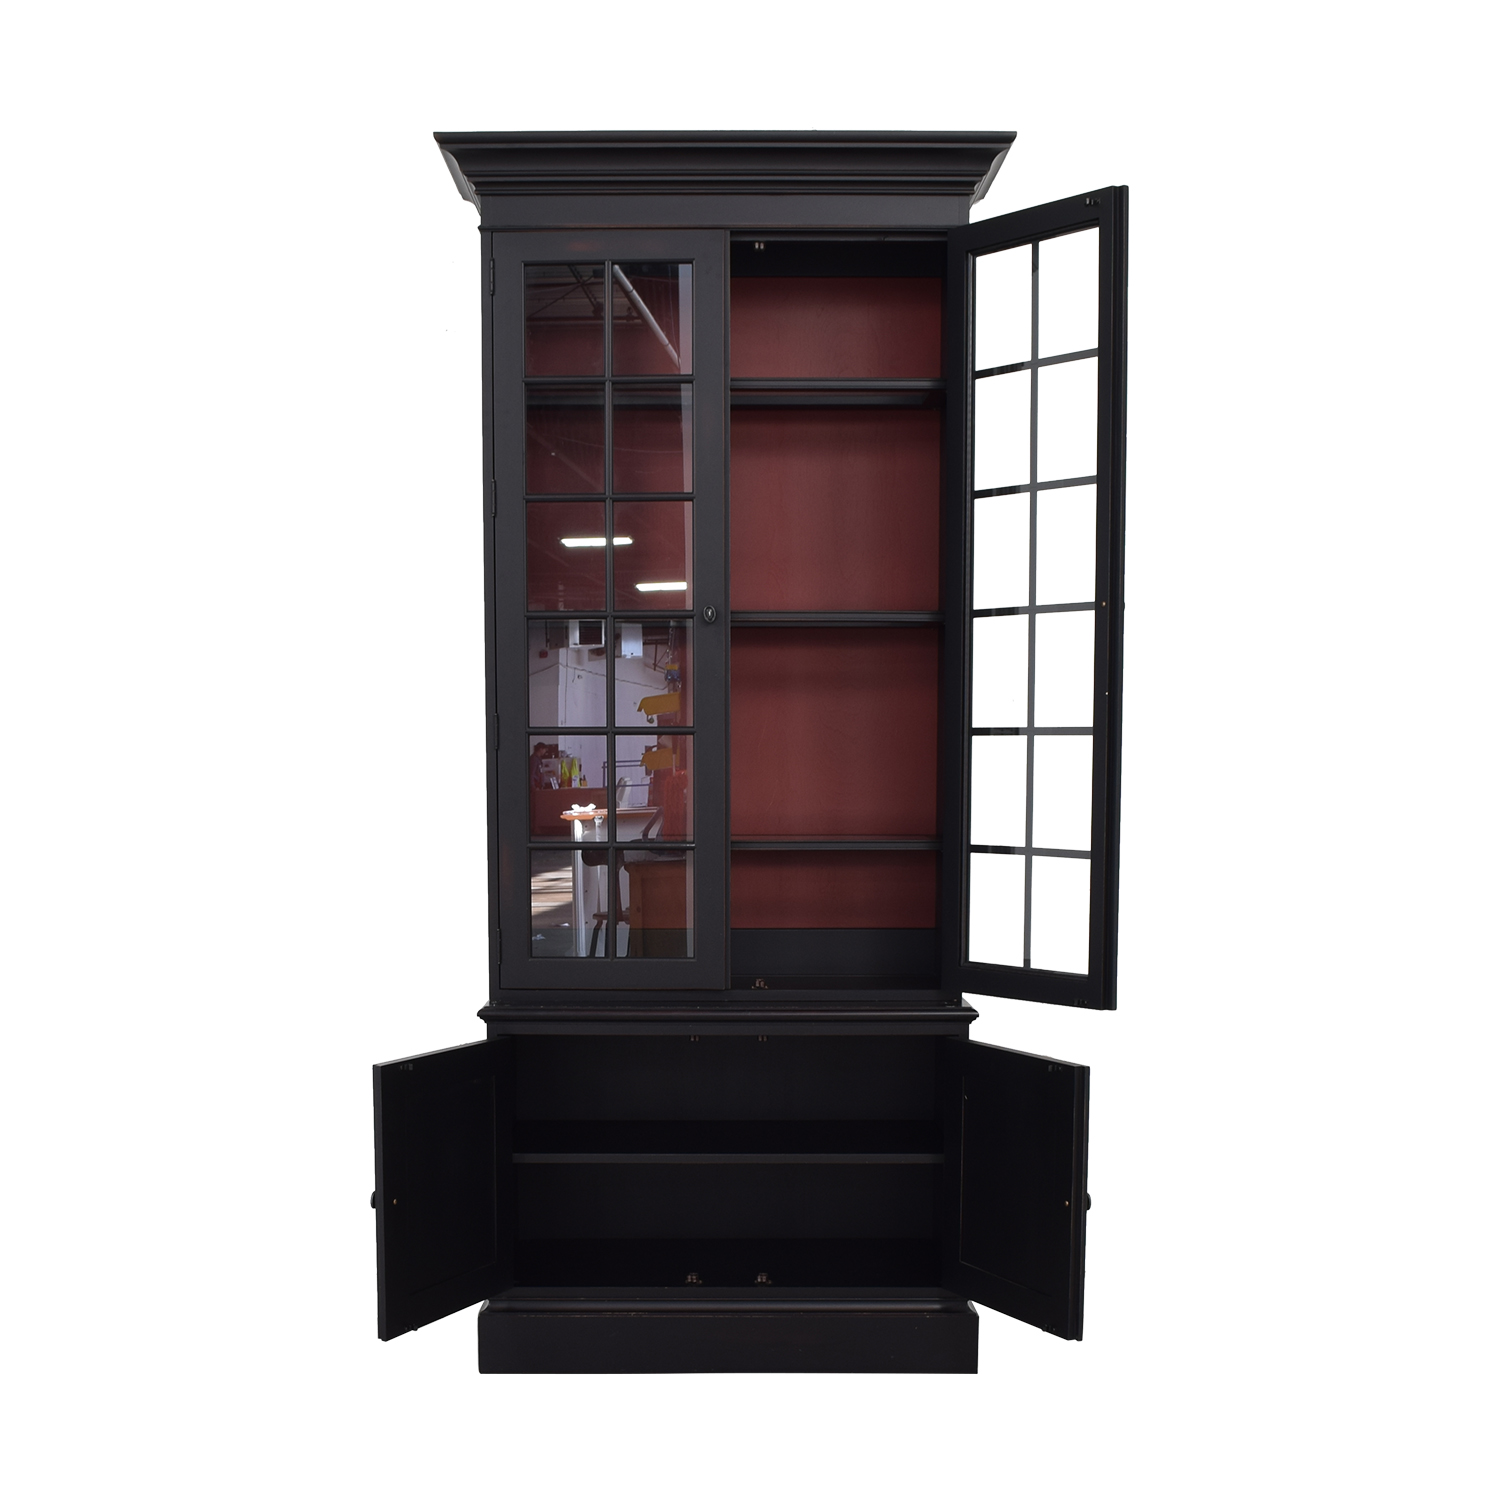 Ethan Allen Ethan Allen Villa Black Single Library Bookcase price